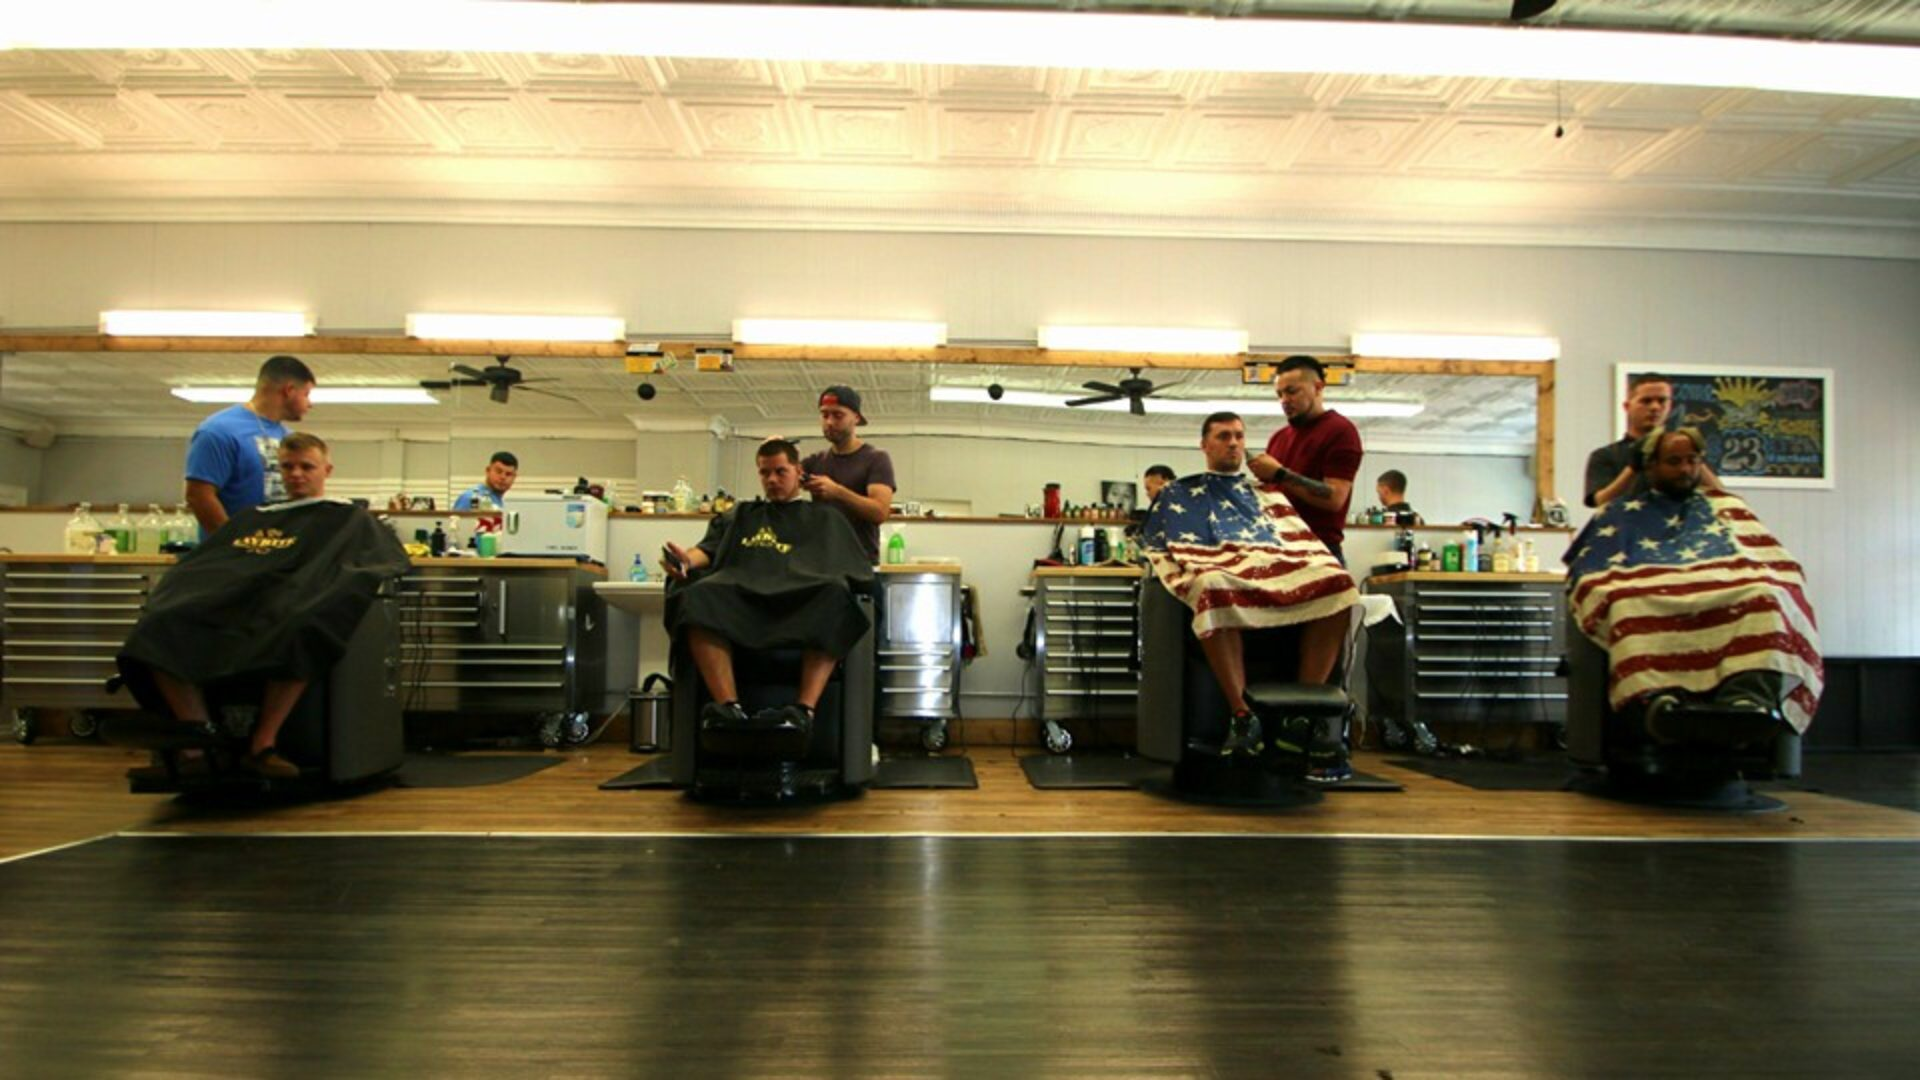 Heirloom Barber and Shave Shop